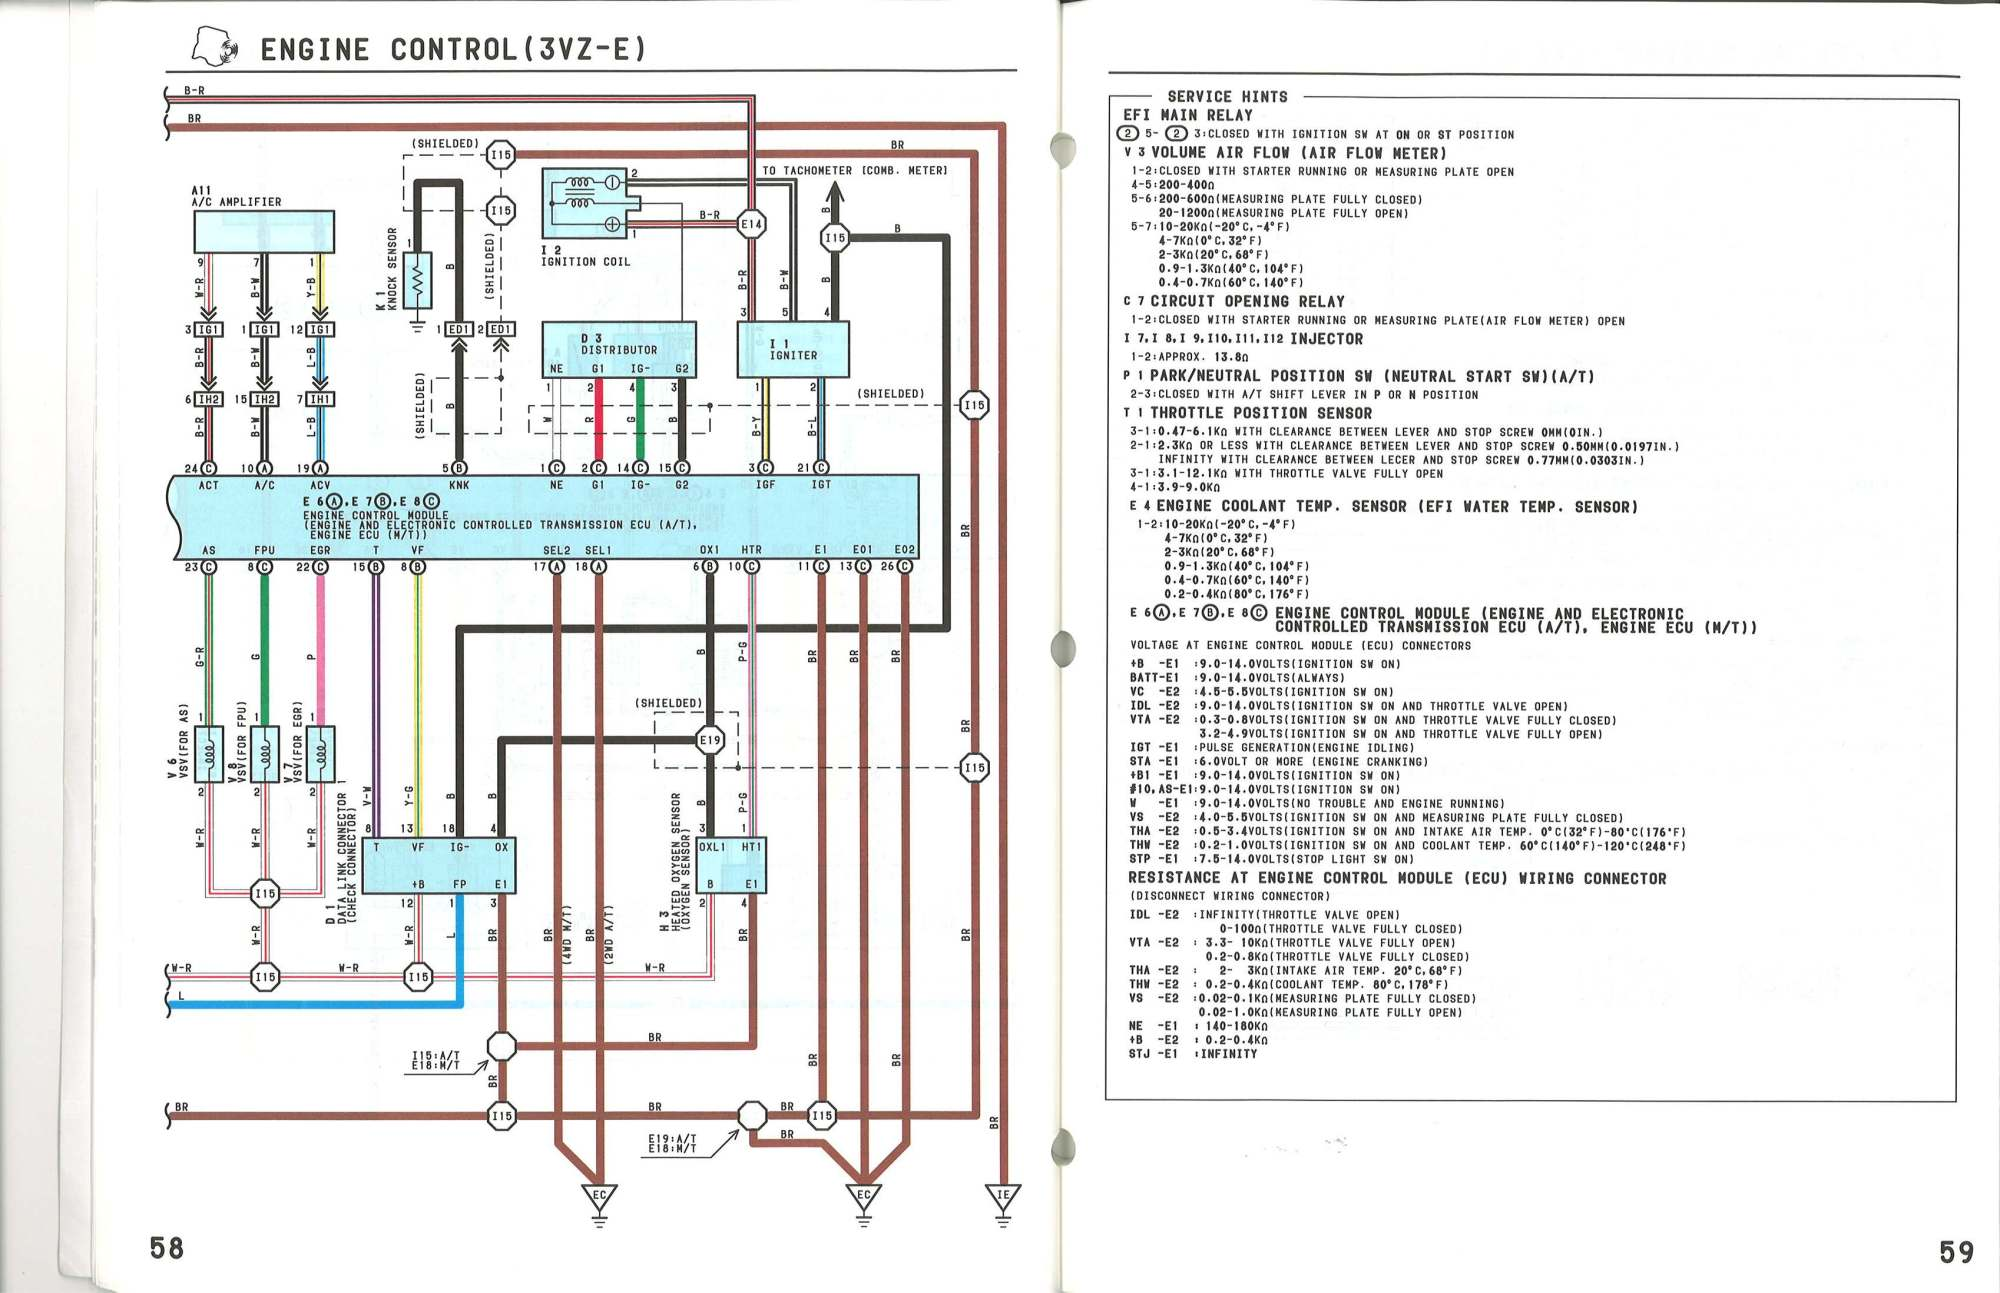 hight resolution of 1987 toyota wiring harness diagram wiring diagram 1987 toyota wiring harness diagram